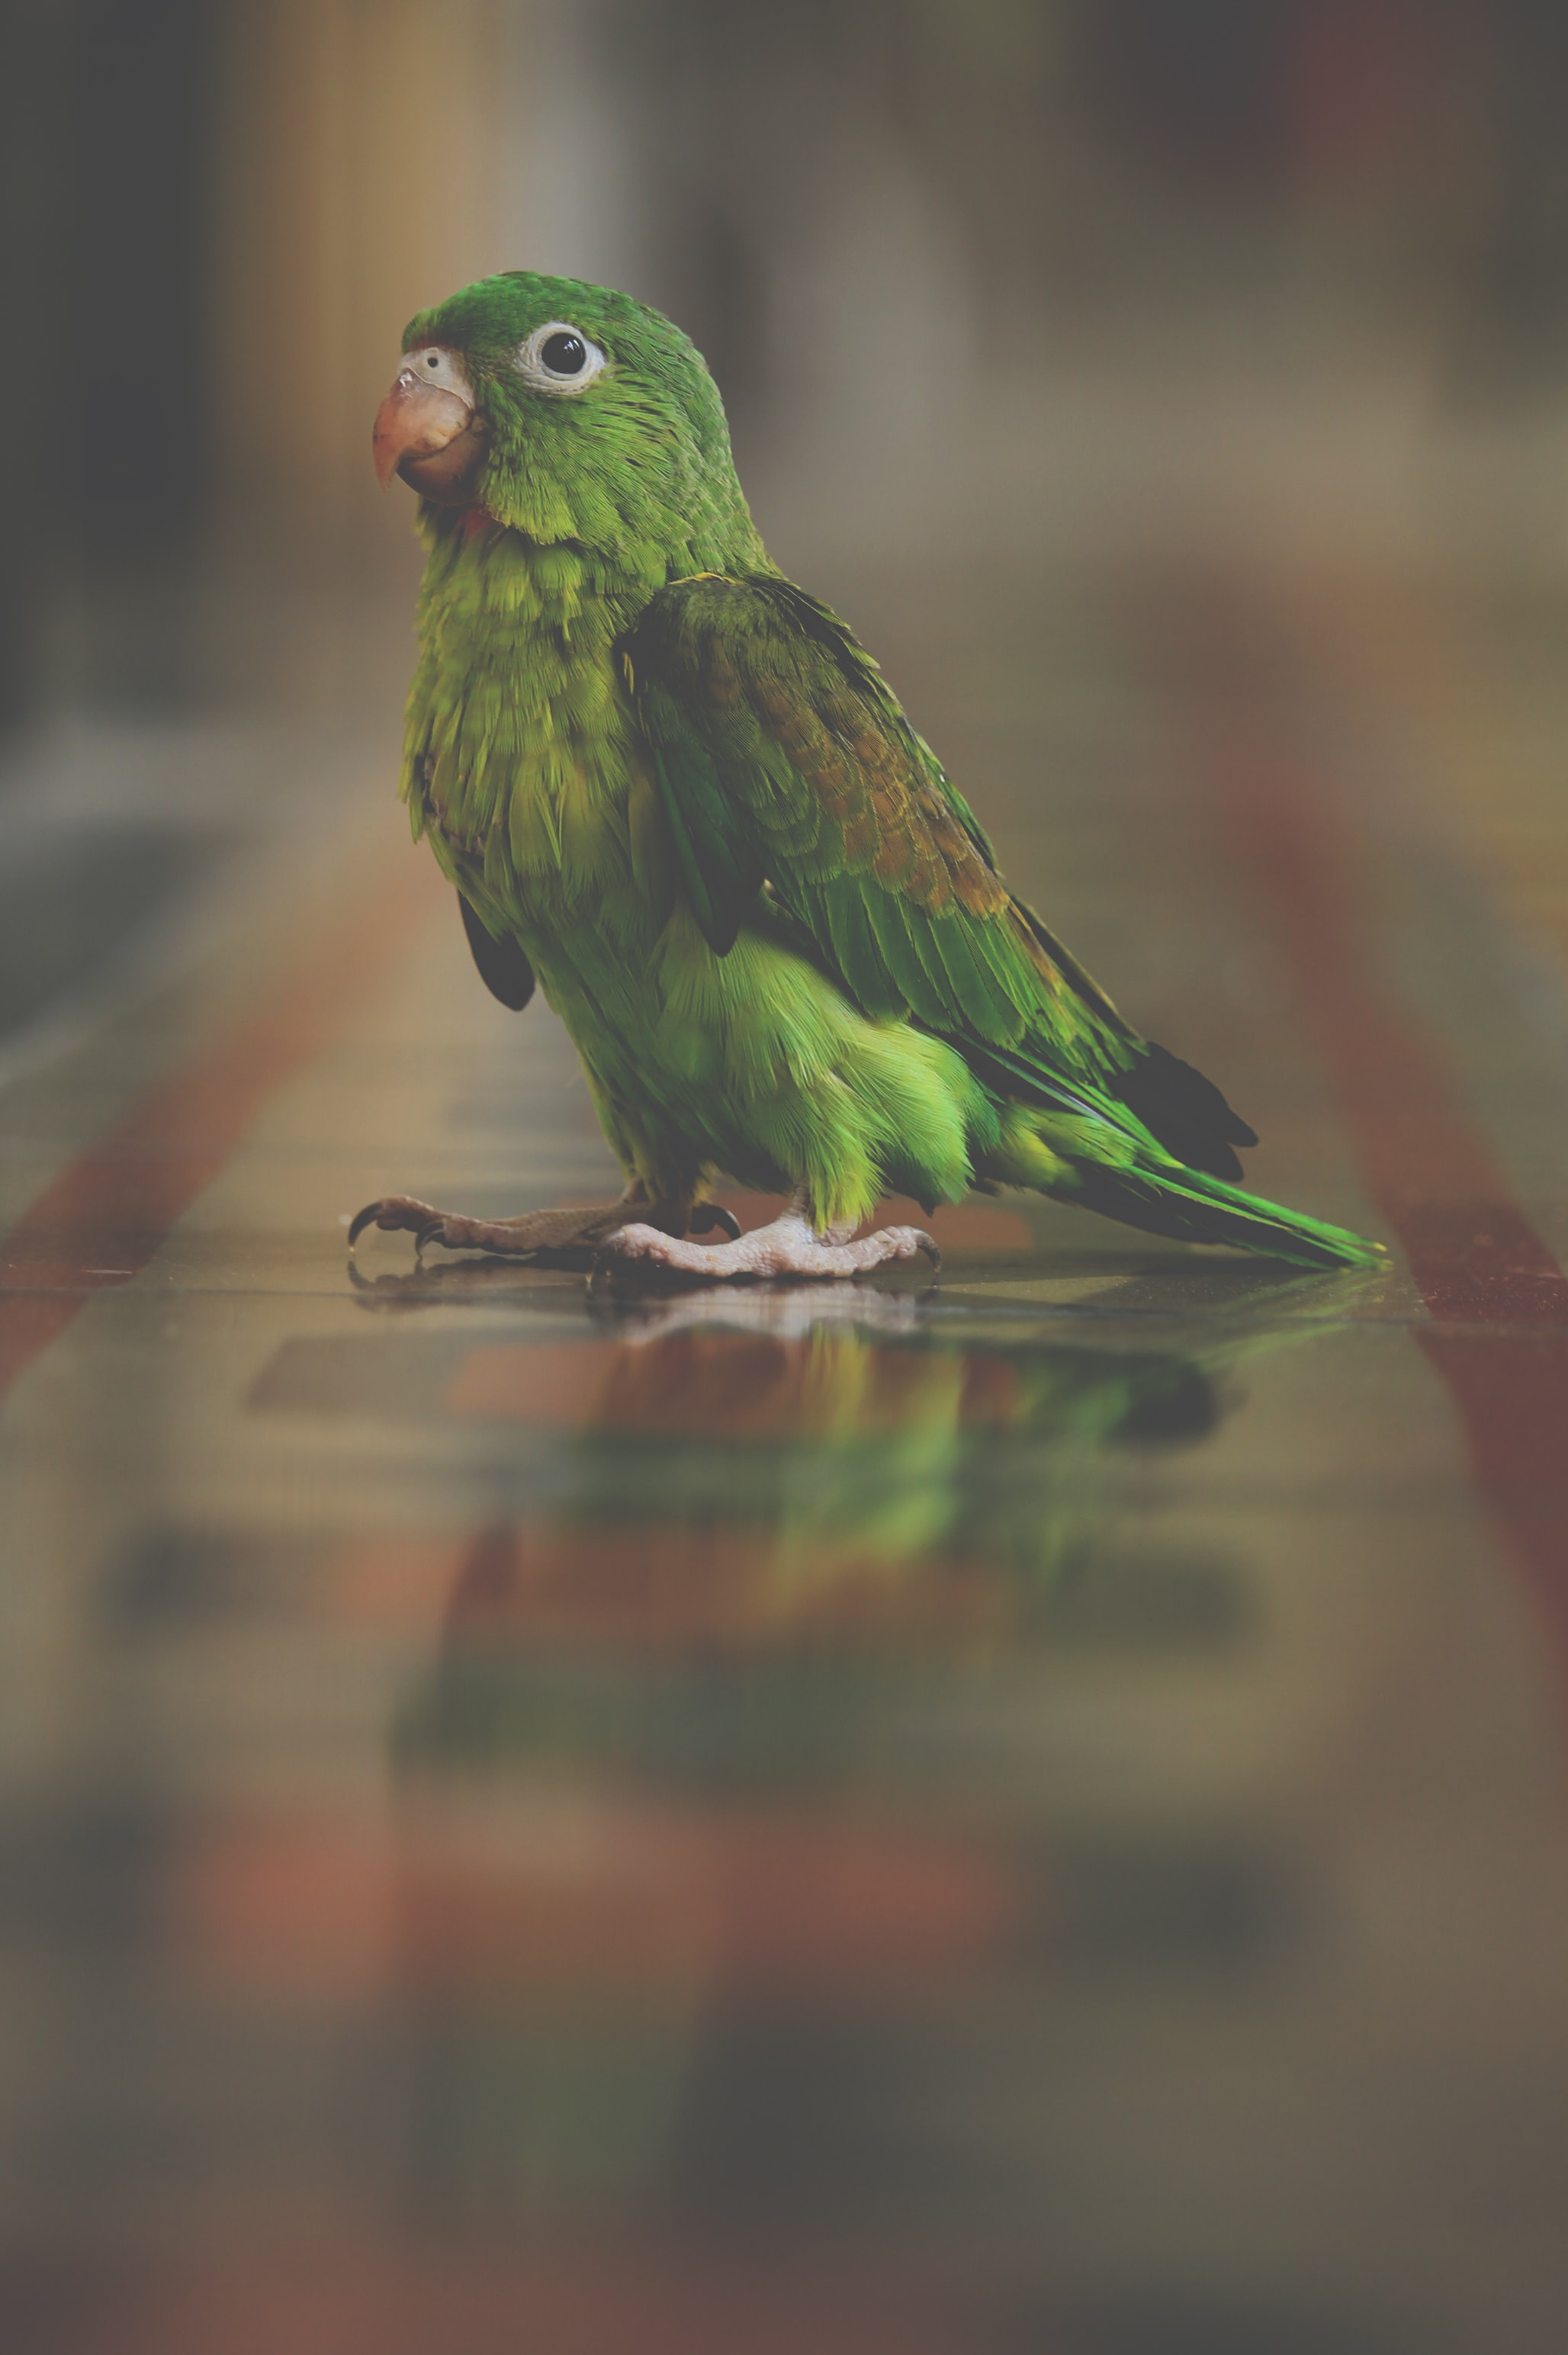 green bird standing on brown surface